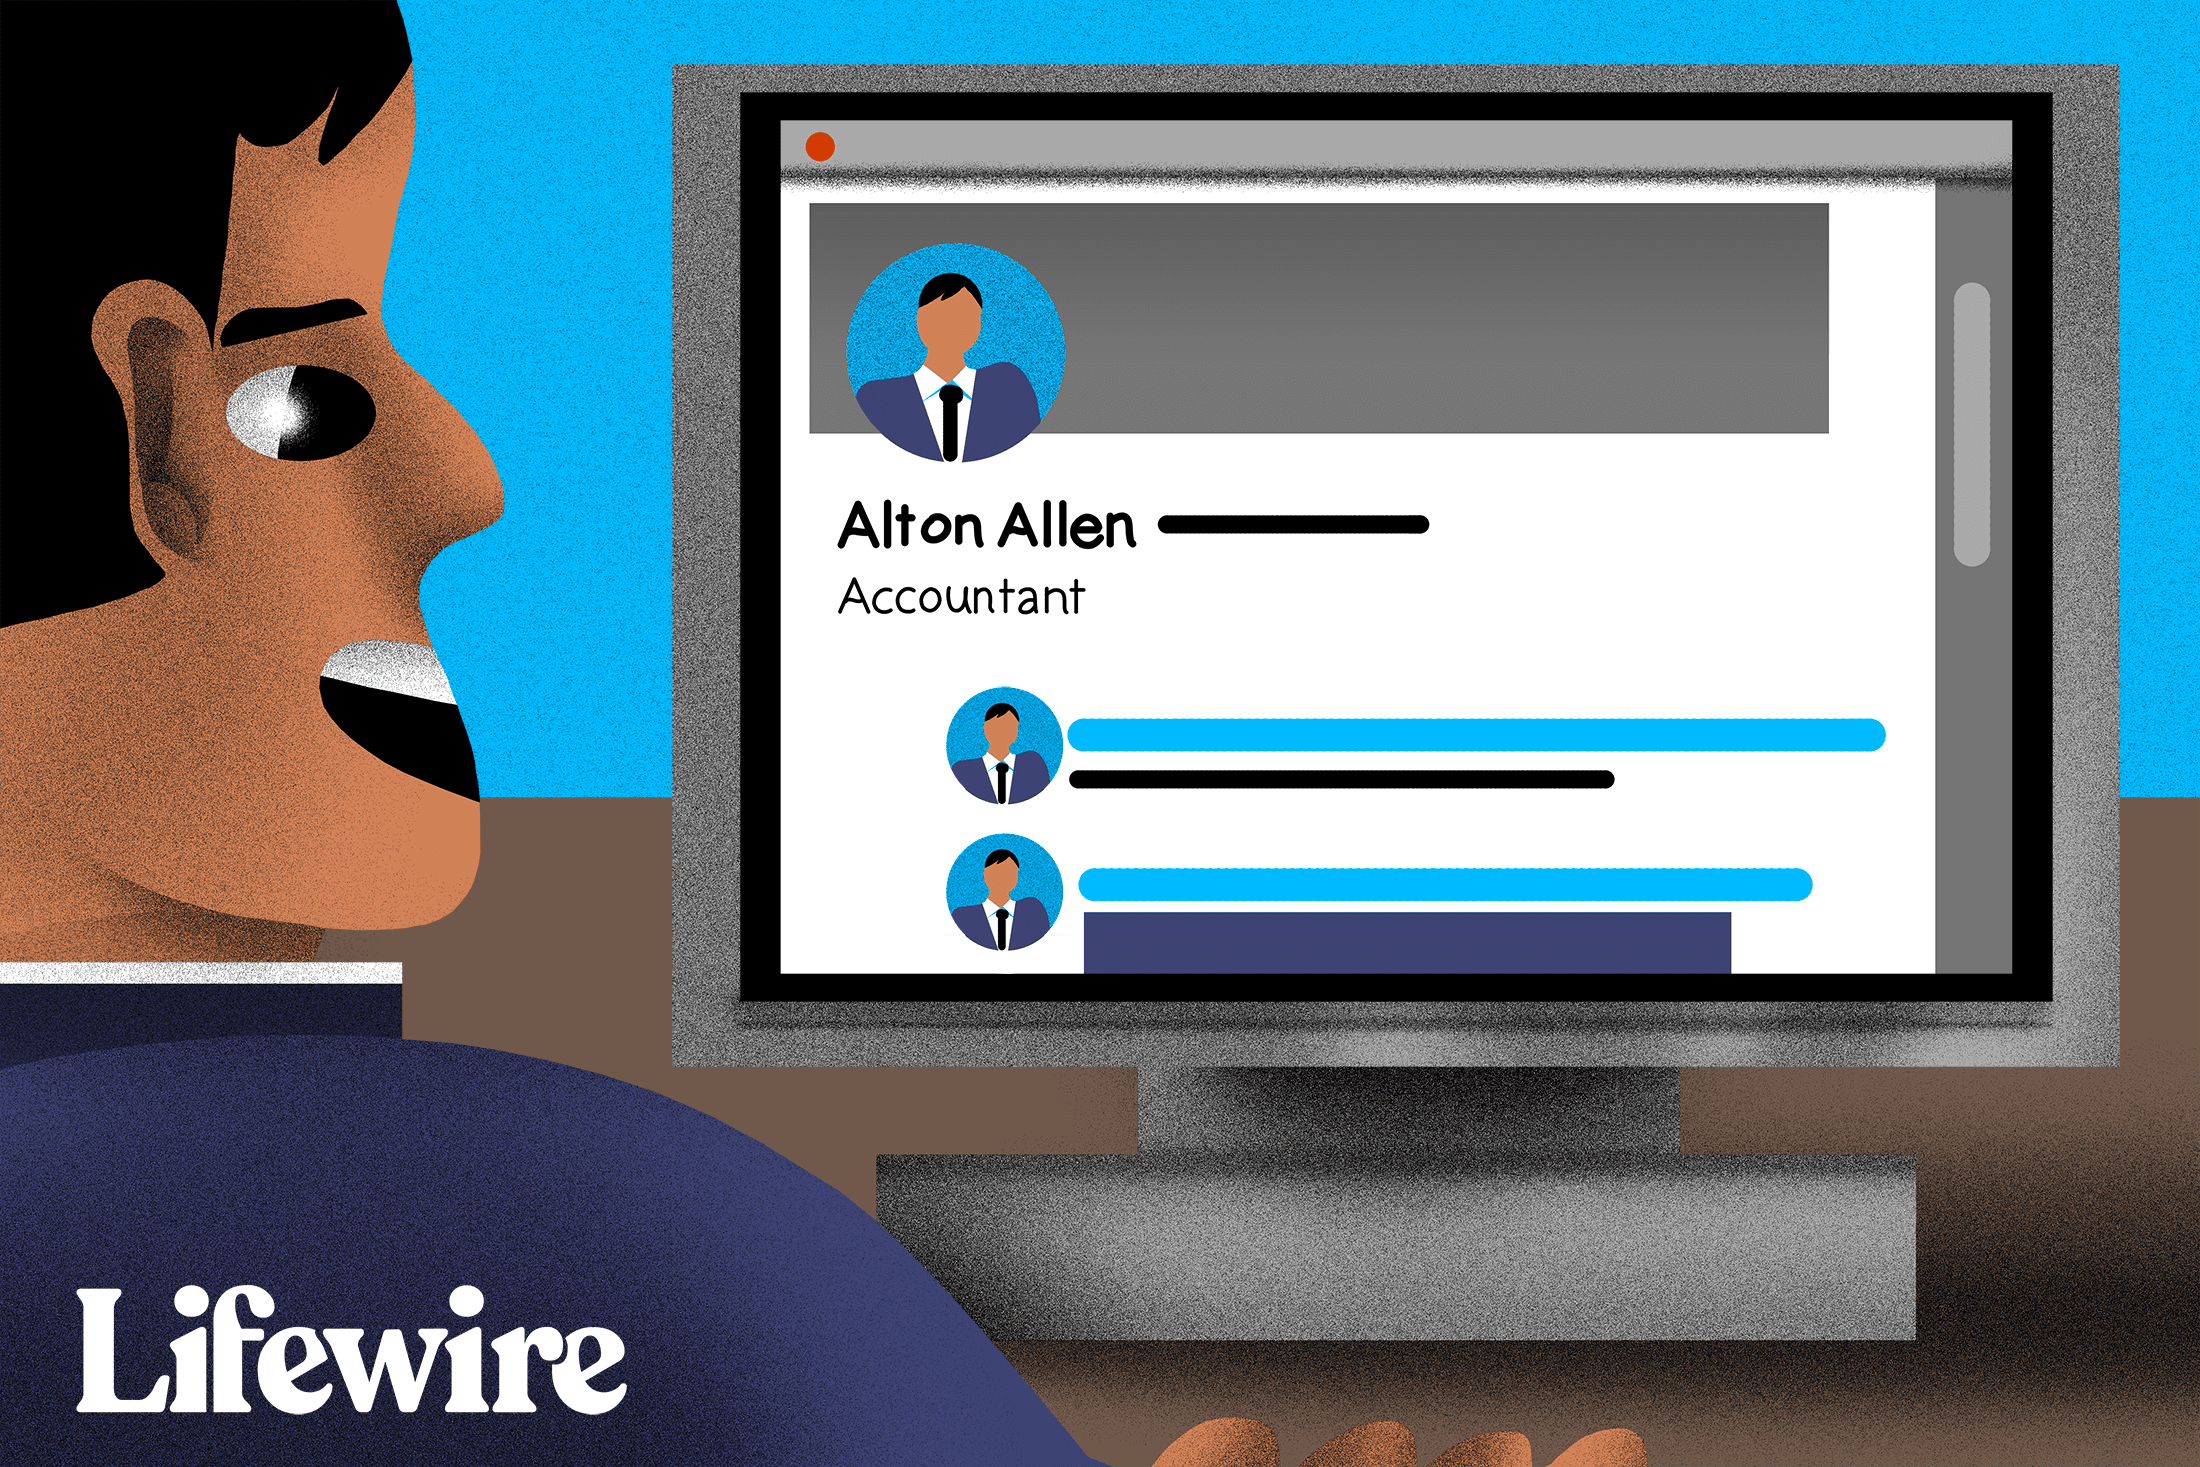 Someone in a suit looking at Alton Allen's profile on LinkedIn